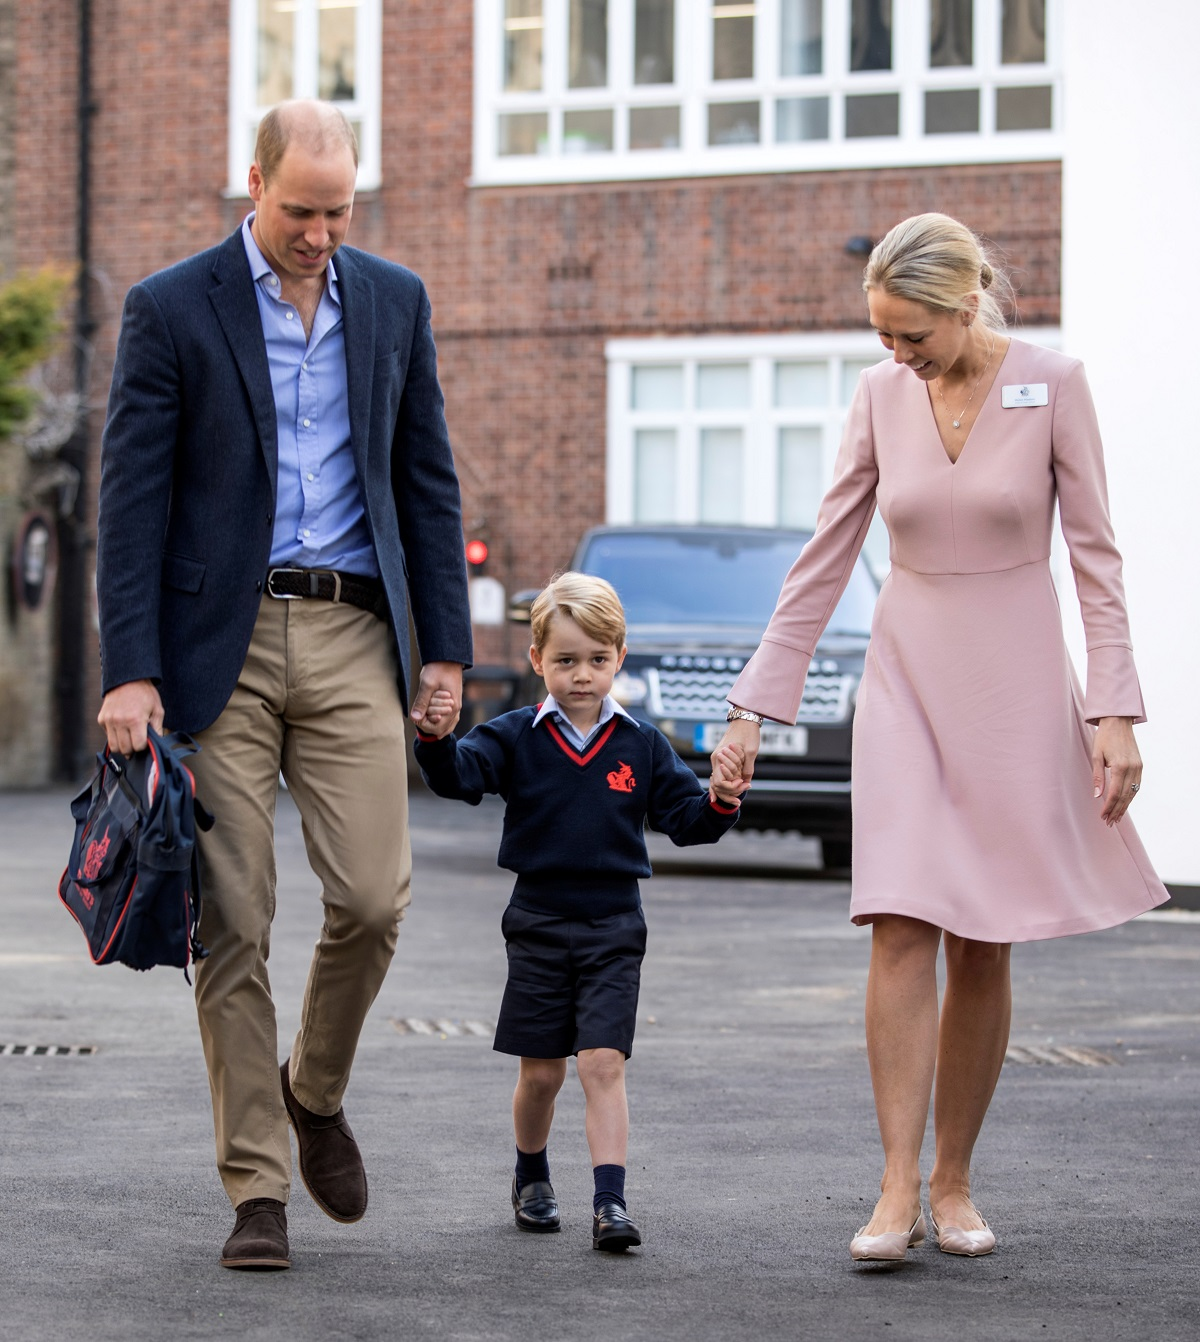 Helen Haslem, head of the lower school and Britain's Prince William hold Prince George's hands as he arrives for his first day of school at Thomas's school in Battersea, London, September 7, 2017. REUTERS/Richard Pohle/Pool - RC1F7FFDD1F0